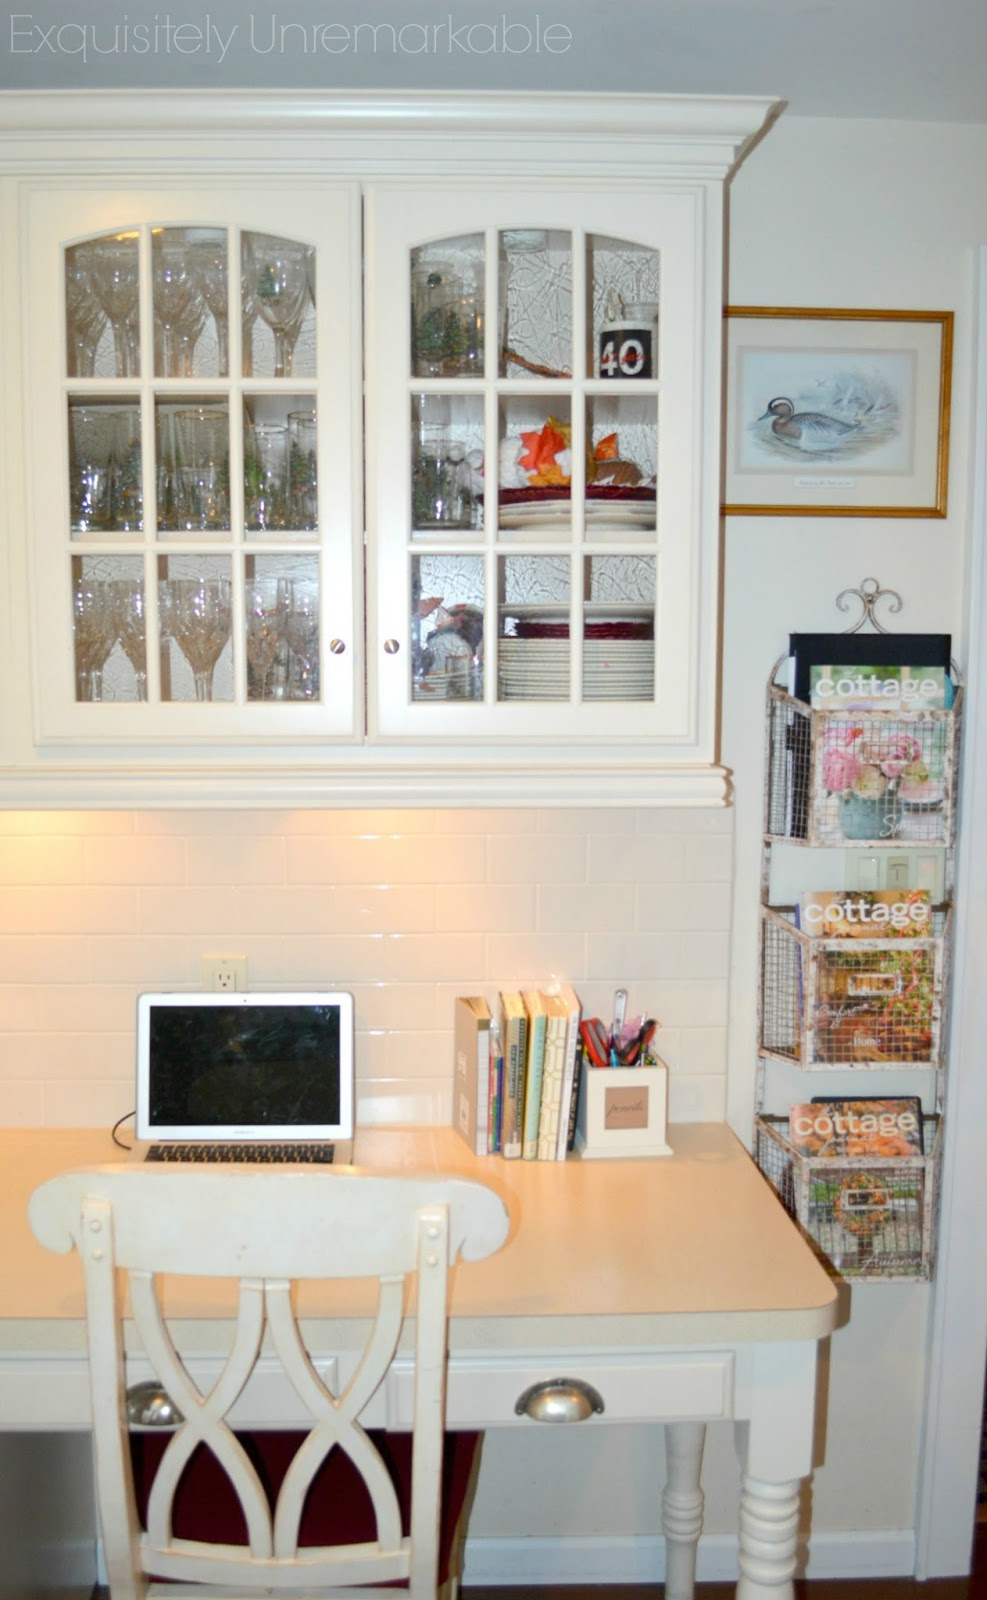 Kitchen Desk How To Cover Glass Cabinet Doors With Fabric Exquisitely Unremarkable